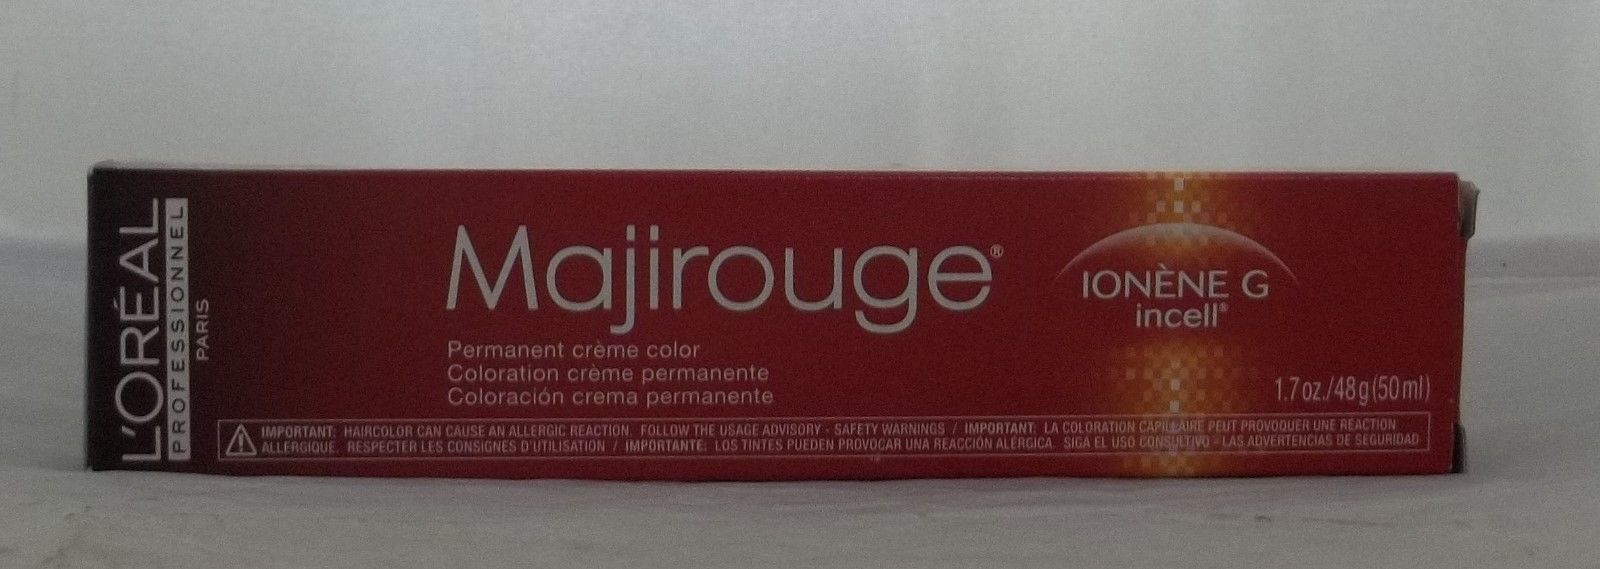 Loreal Majirouge Permanent Cream Hair Color Mastery Of Brilliant